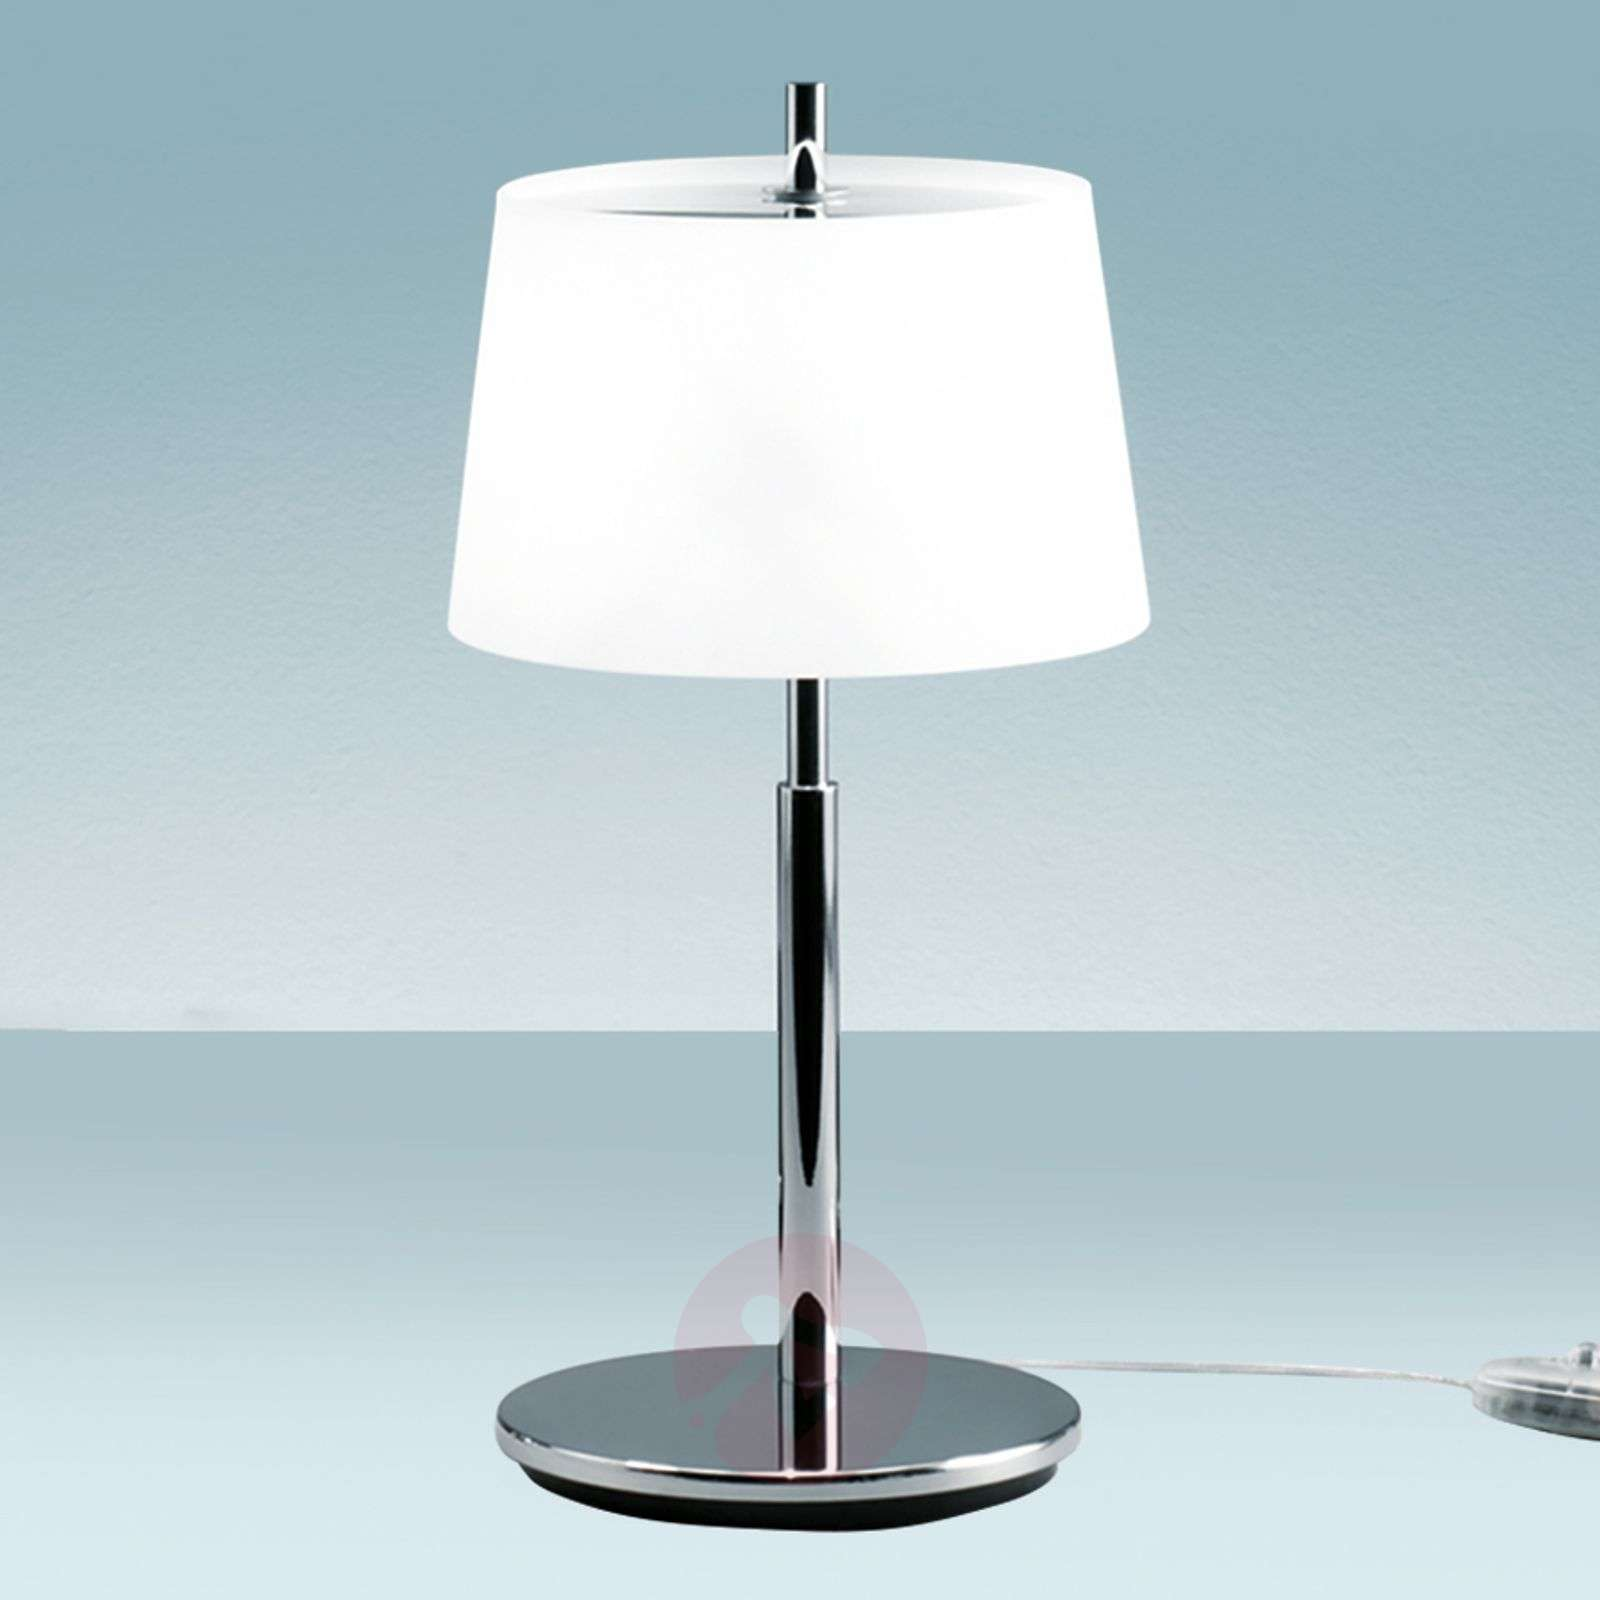 Exquisite table lamp passion in 2 sizes lights mozeypictures Gallery